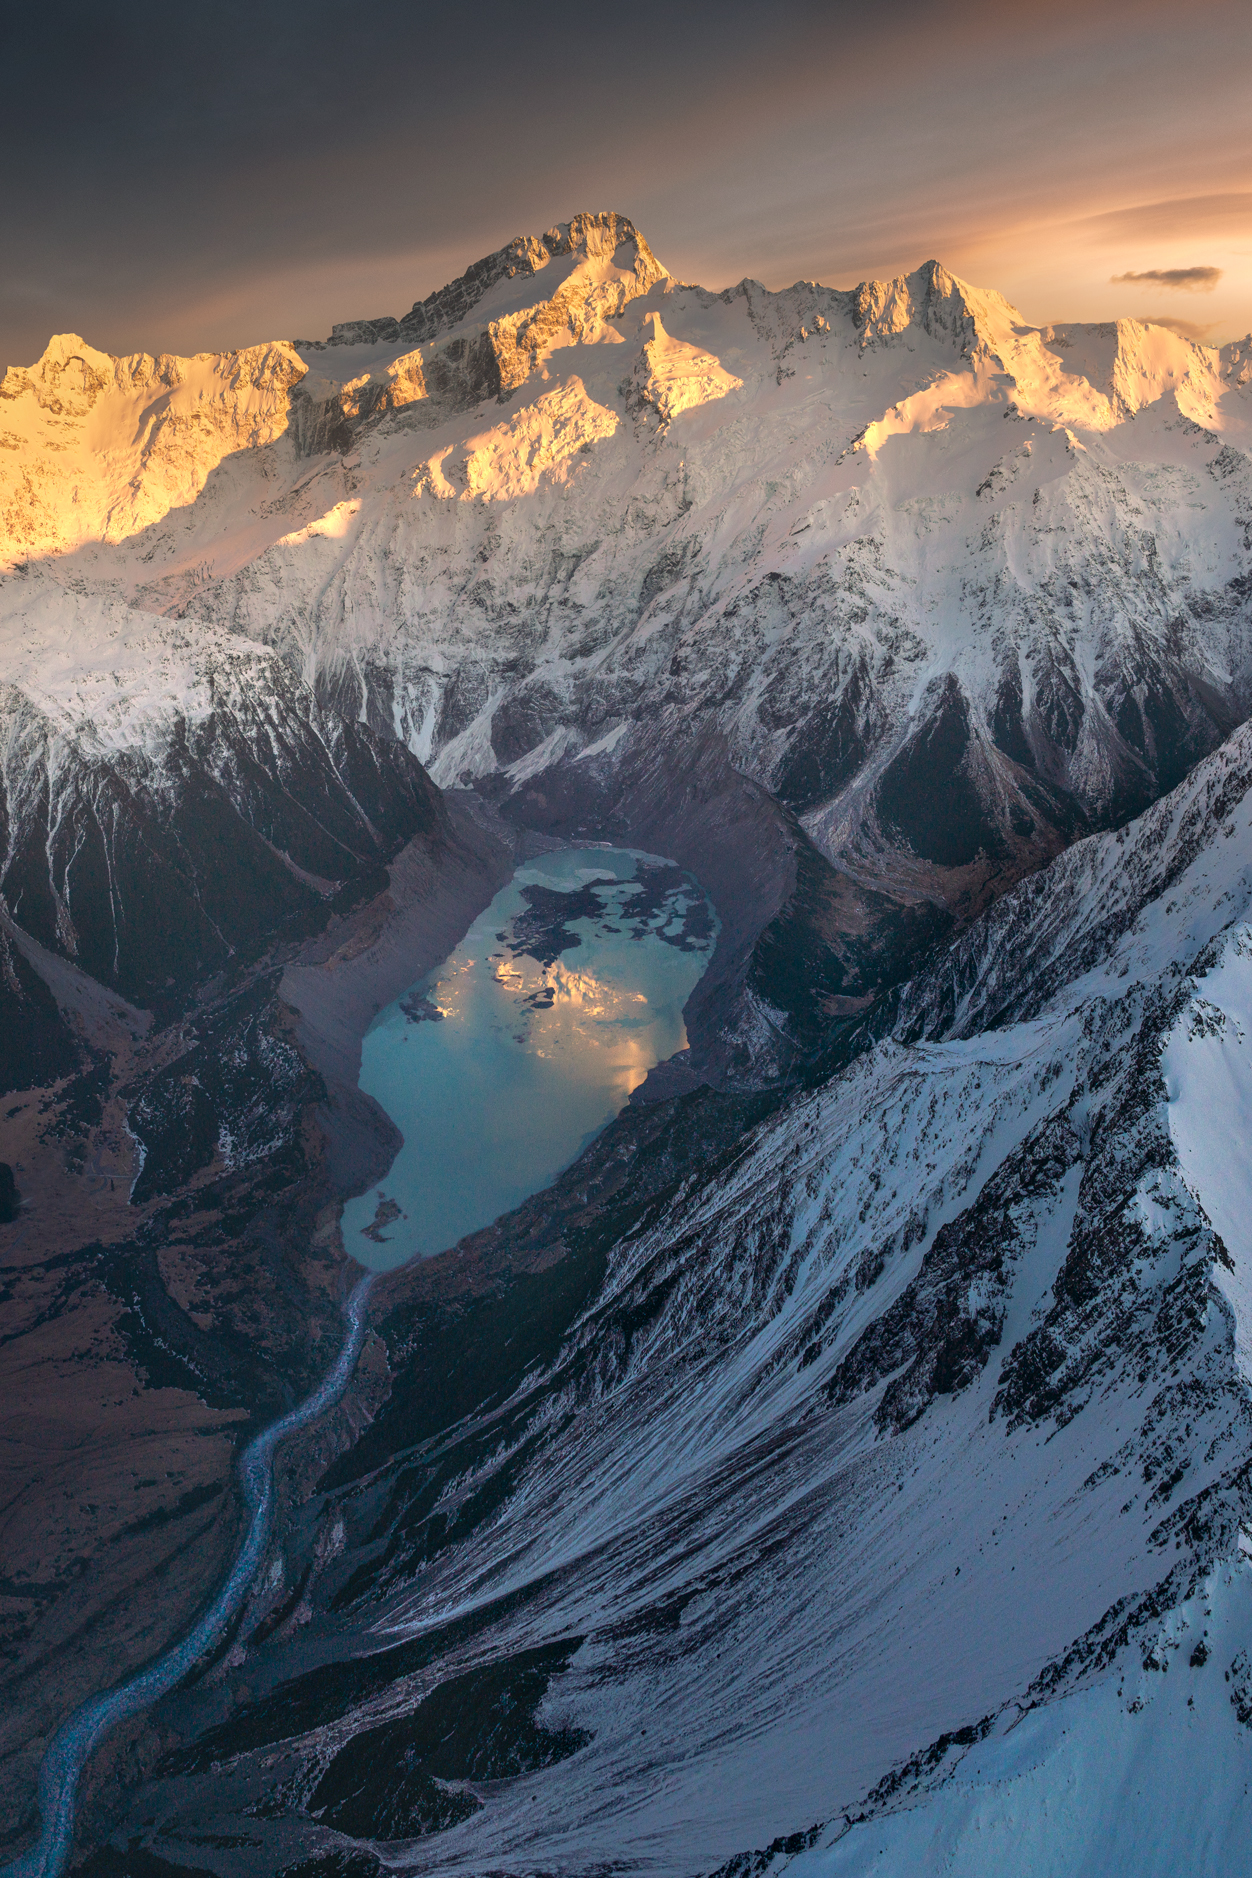 Glaciated Mountains and lake, New Zealand.